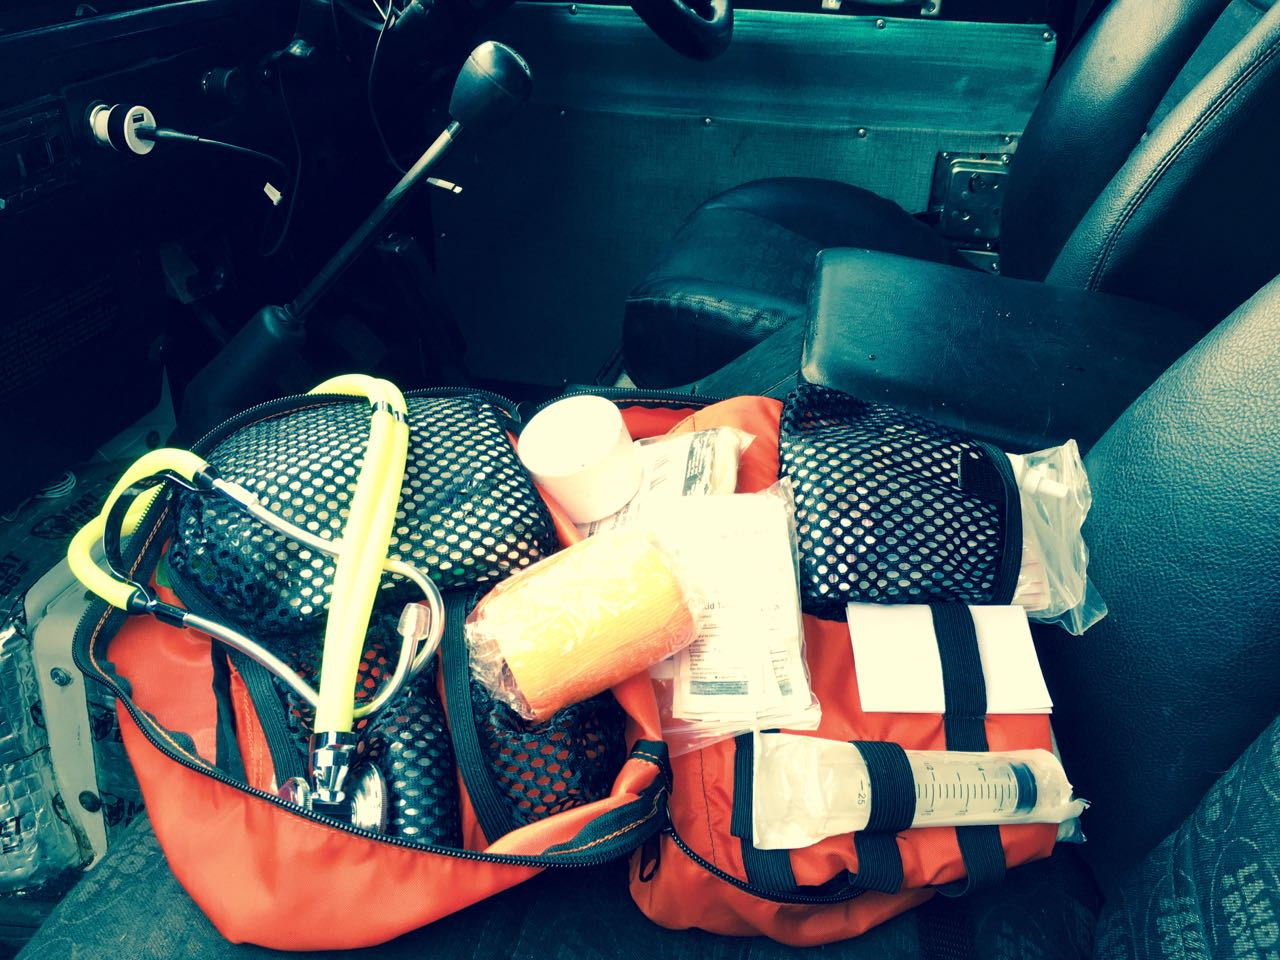 Real Emergencies - First Aid Training and First Aid Kits